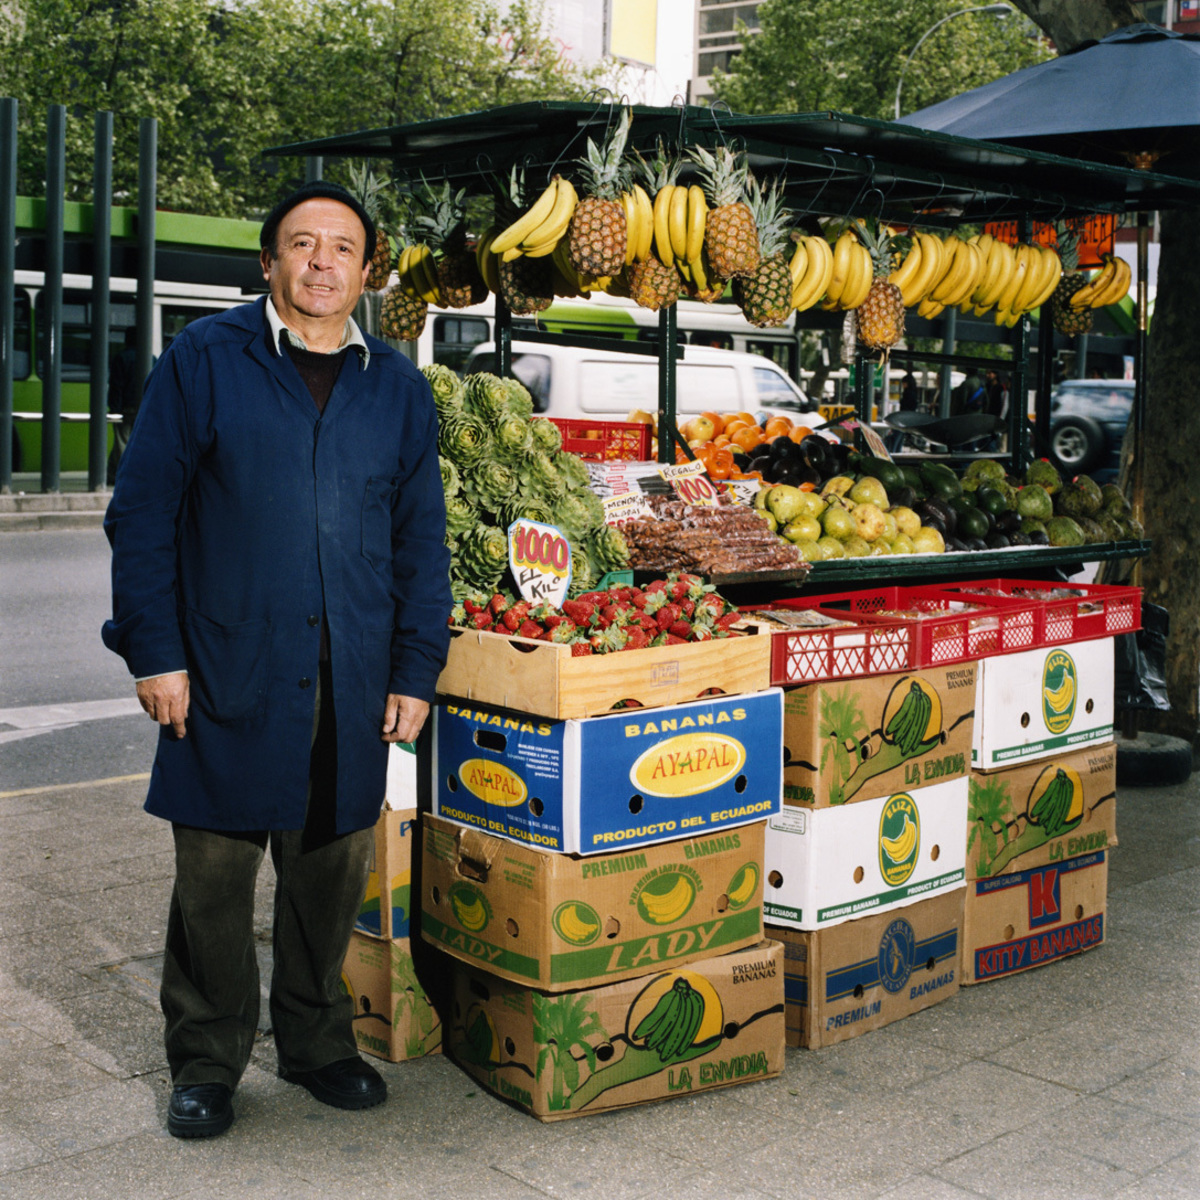 Fruit and Vegetables Stall, Procidencia, Santiago, Chile